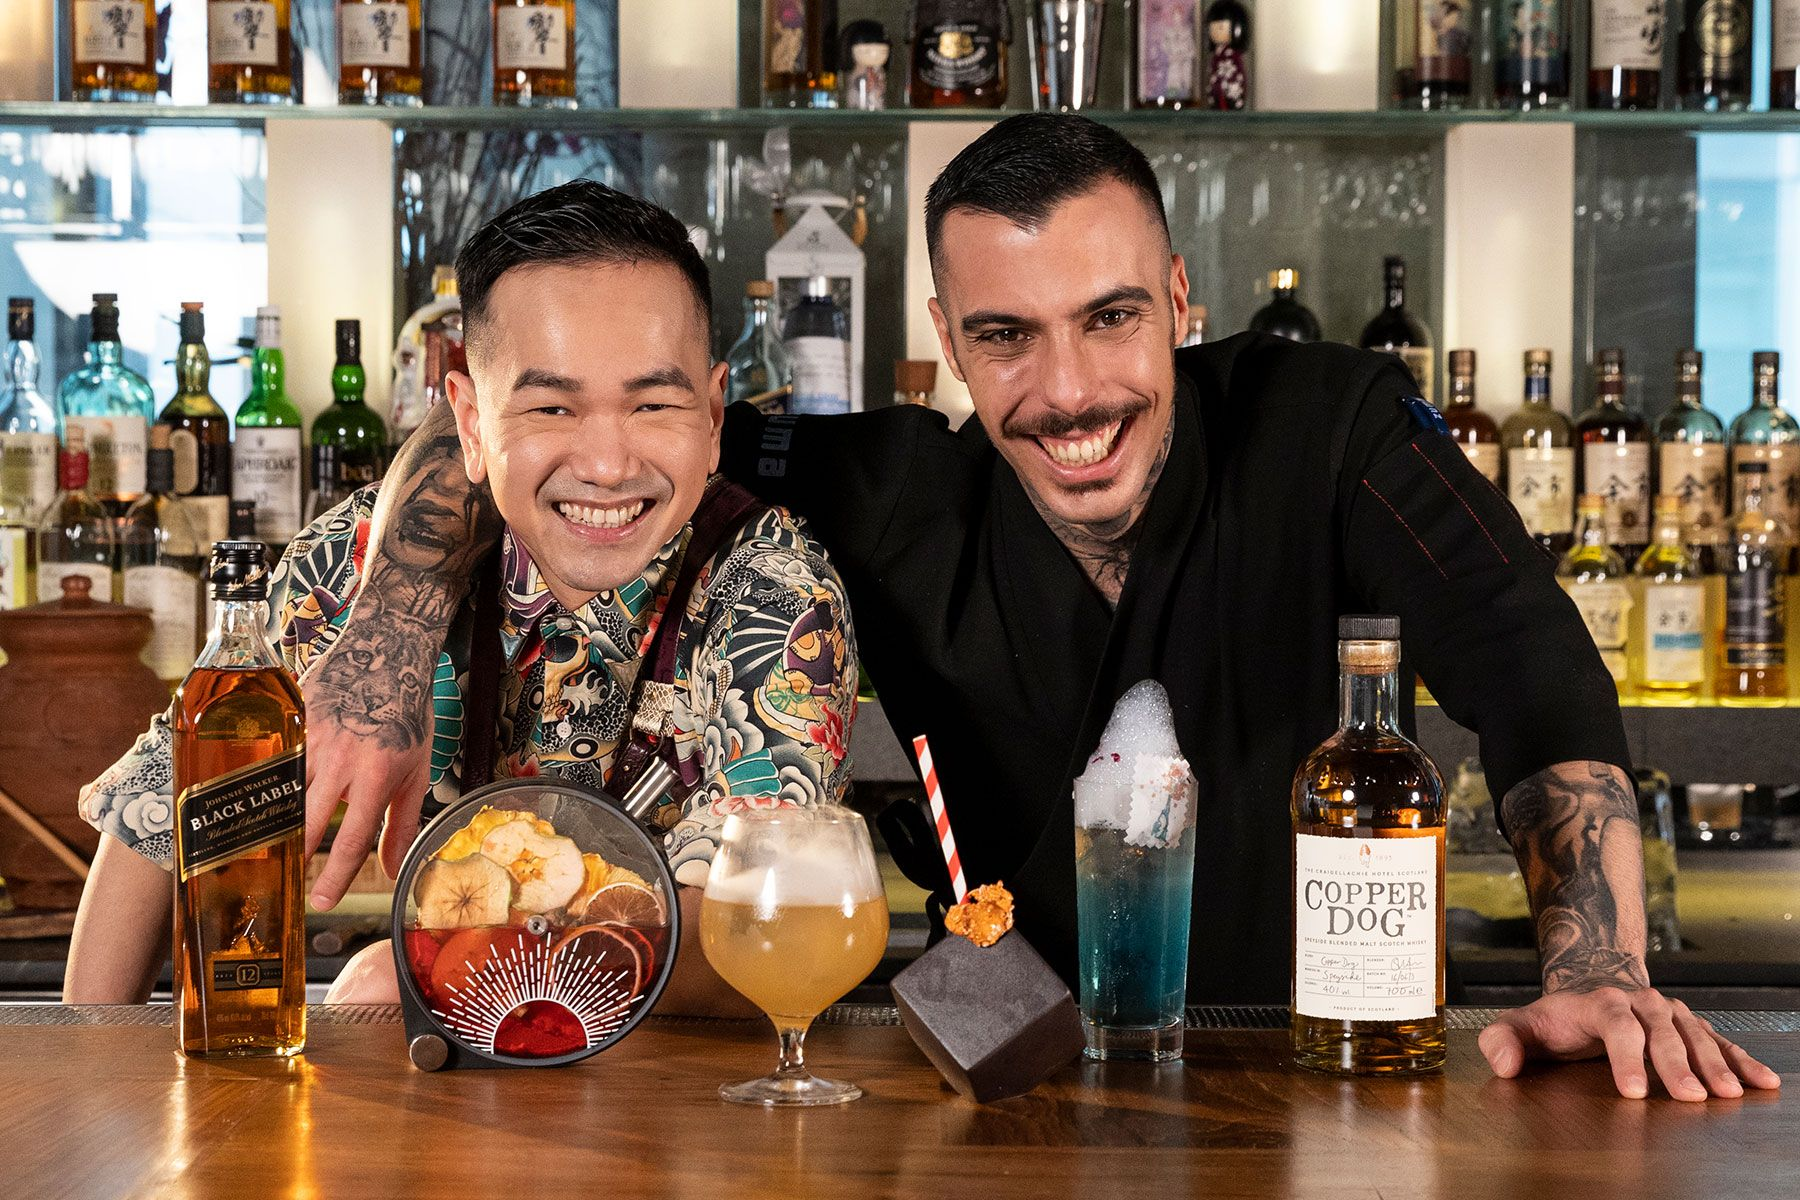 Hong Kong Restaurant News: A Four-Way Cocktail Collaboration, Ying Jee Club Toasts Three Years Of Two Michelin Stars, And More